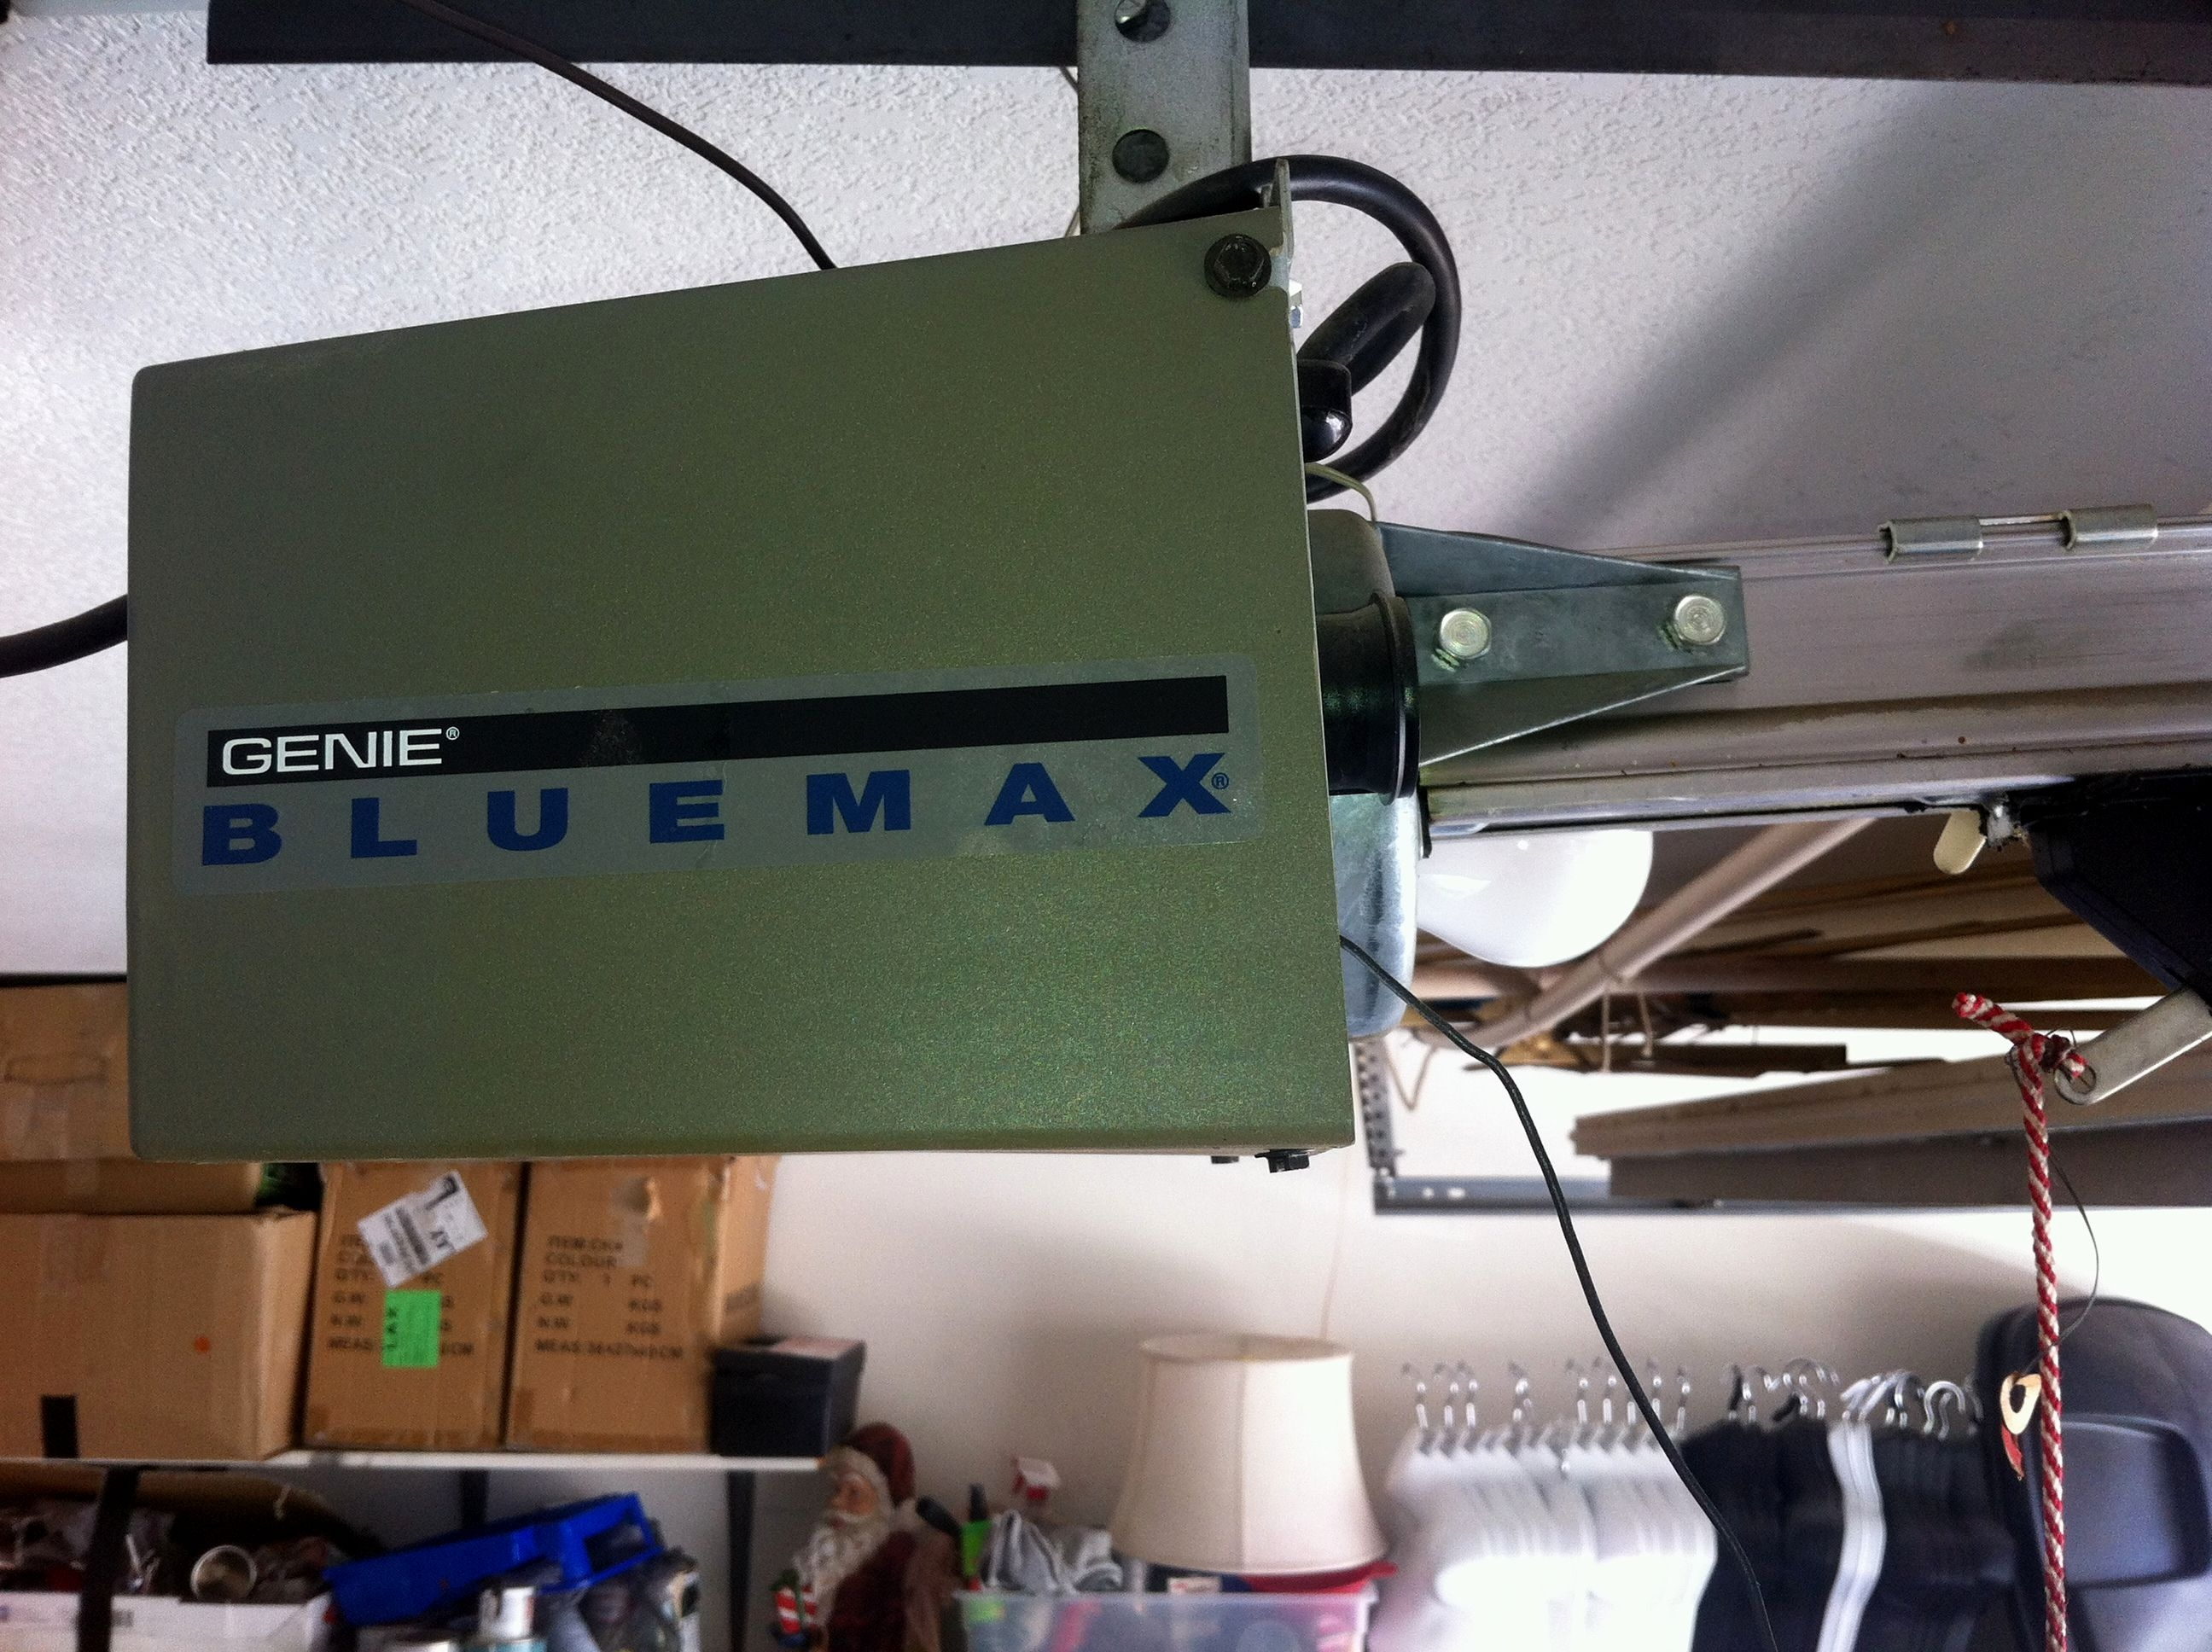 Genie Pro Max Garage Door Opener Troubleshooting Dandk